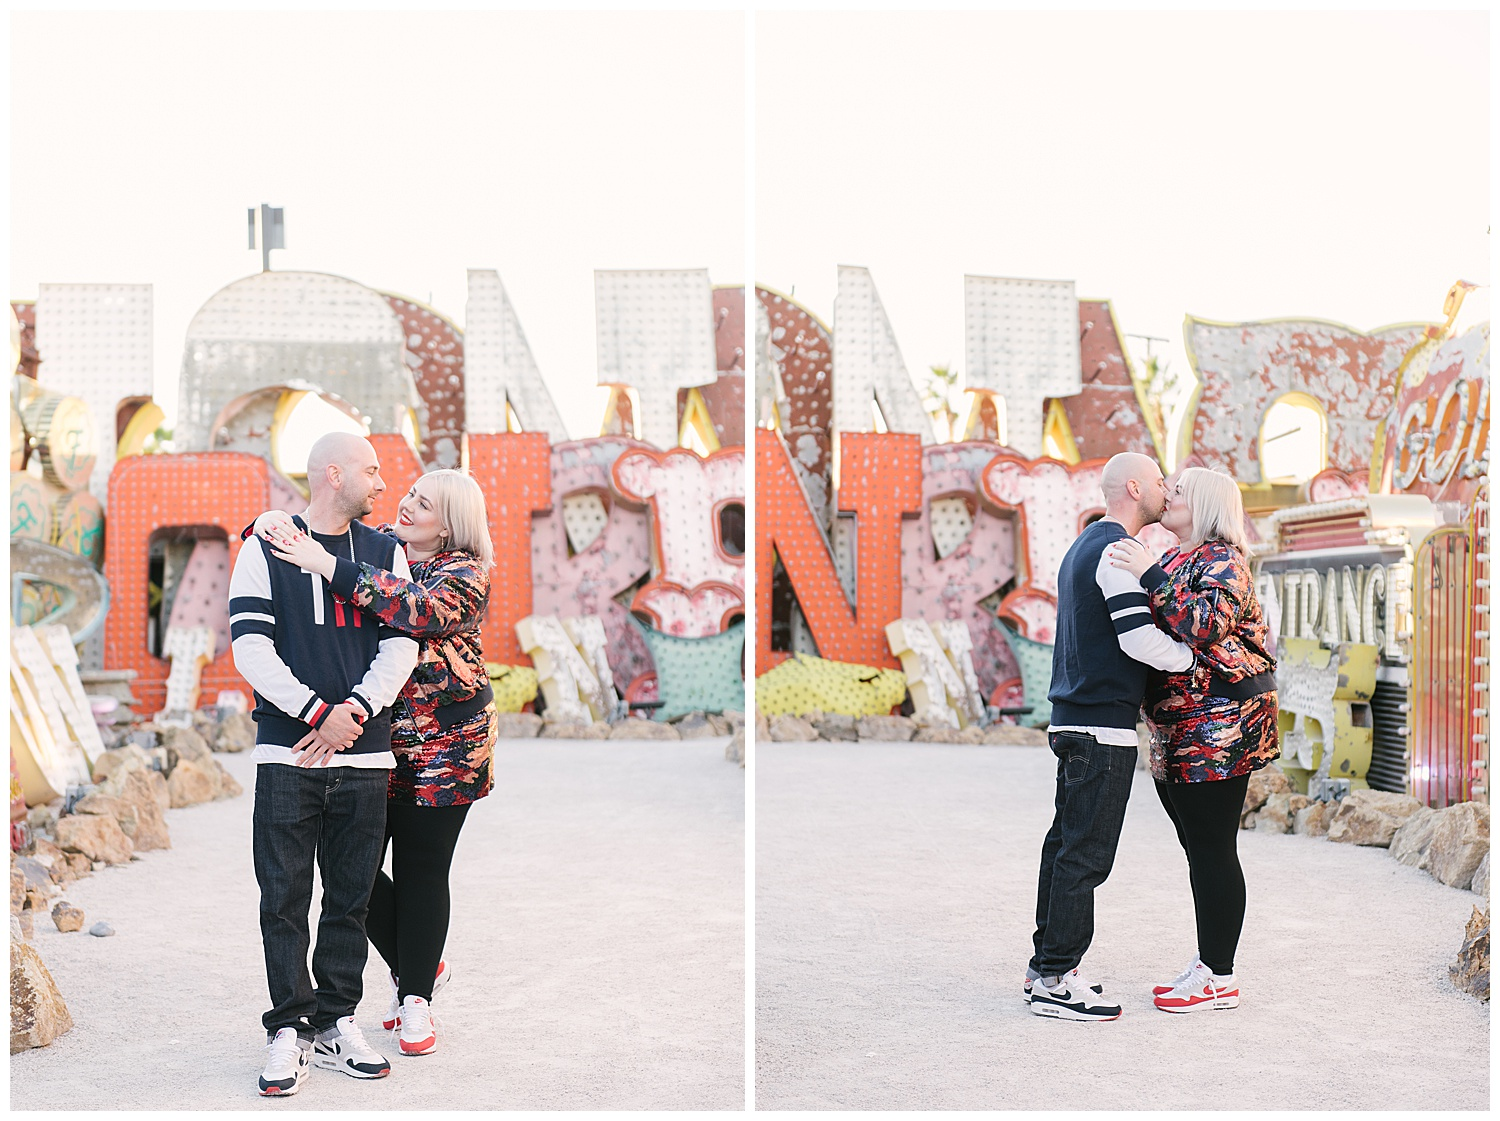 las_vegas_Proposal_neon_museum_photographer-01.jpg